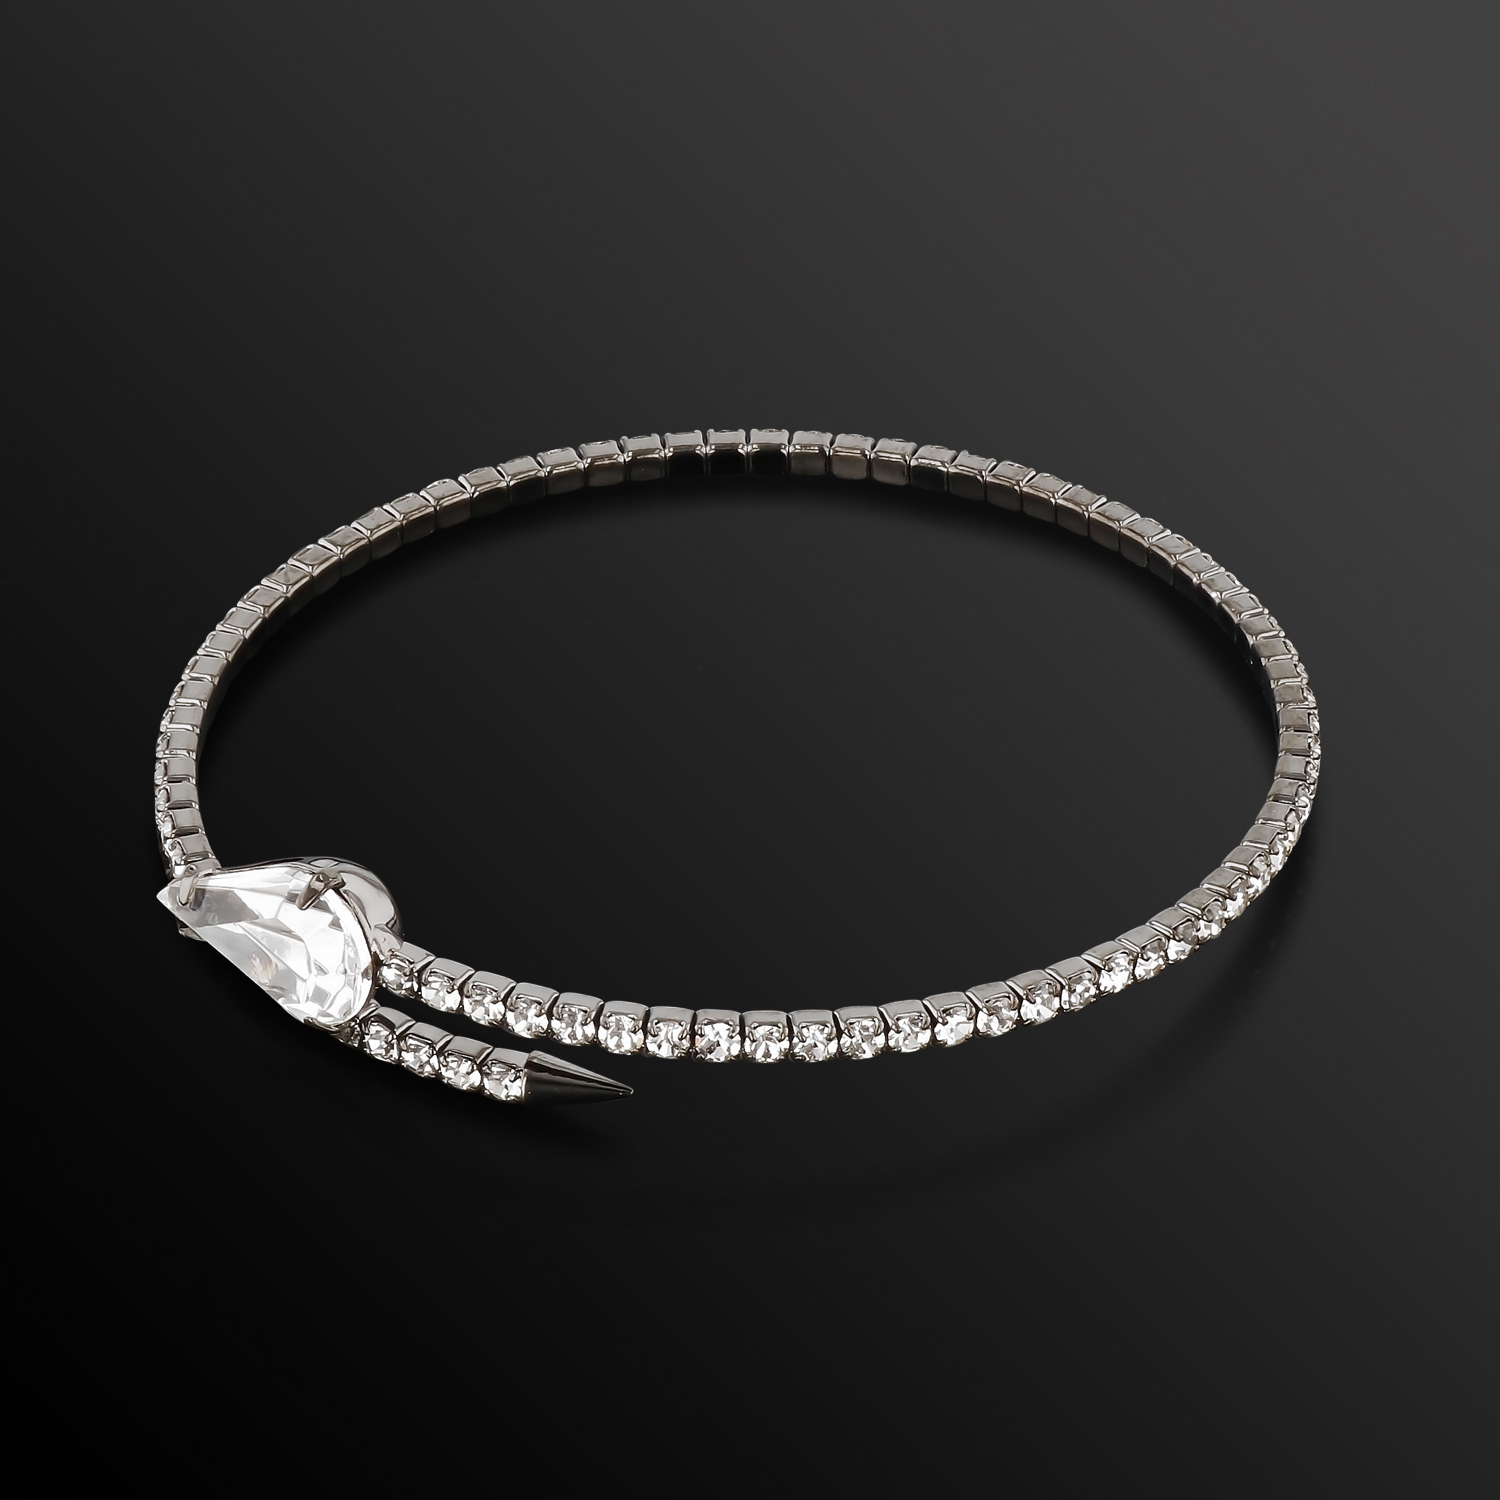 Womens-Ladies-Fashion-Accessories-Jewelry-Single-Crystal-Spear-Bangle-Bracelet thumbnail 6